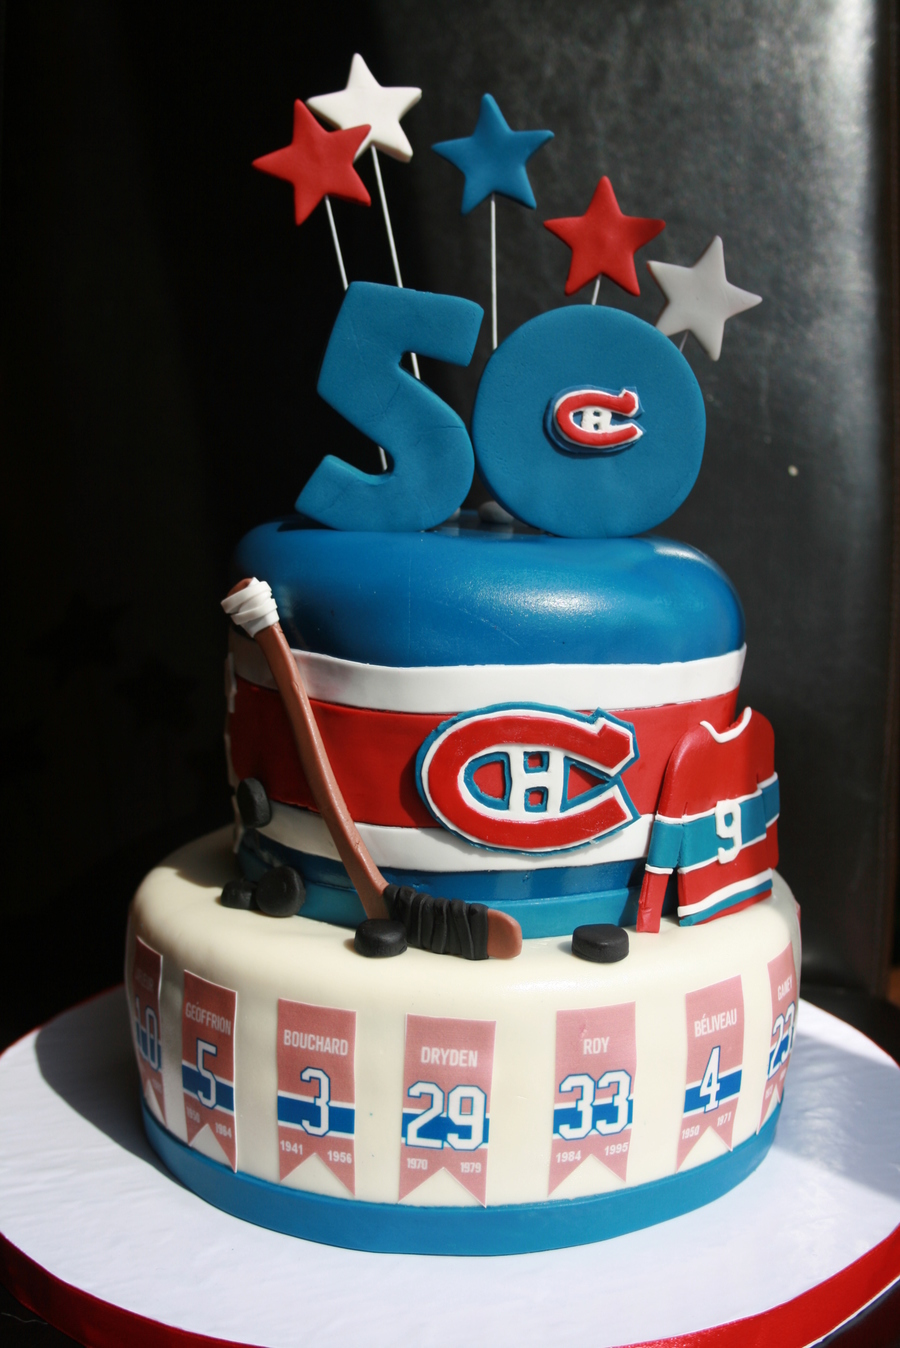 Go Habs Go Such A Fun Cake To Make For A Habs Montreal Canadiens Hockey Fan Turning 50 on Cake Central